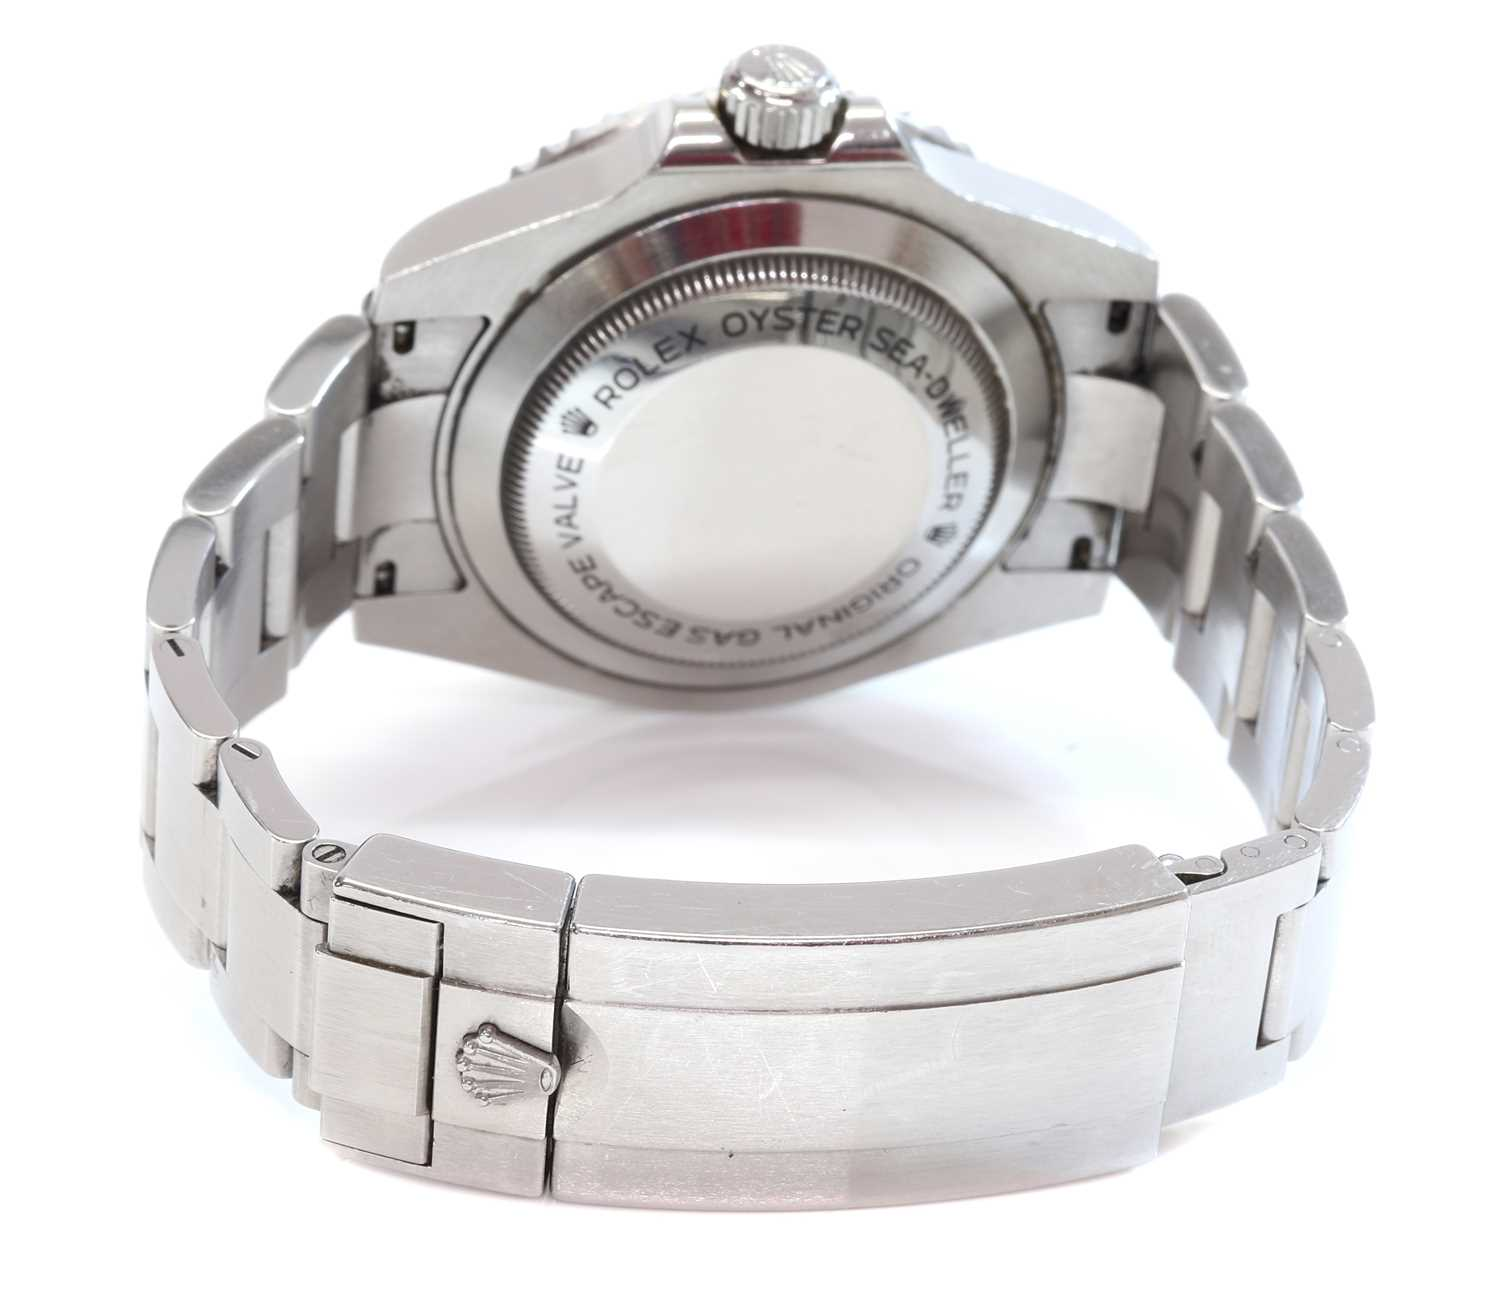 A gentlemen's stainless steel Rolex 'Oyster Perpetual Sea Dweller' automatic bracelet watch, c.2015, - Image 9 of 14